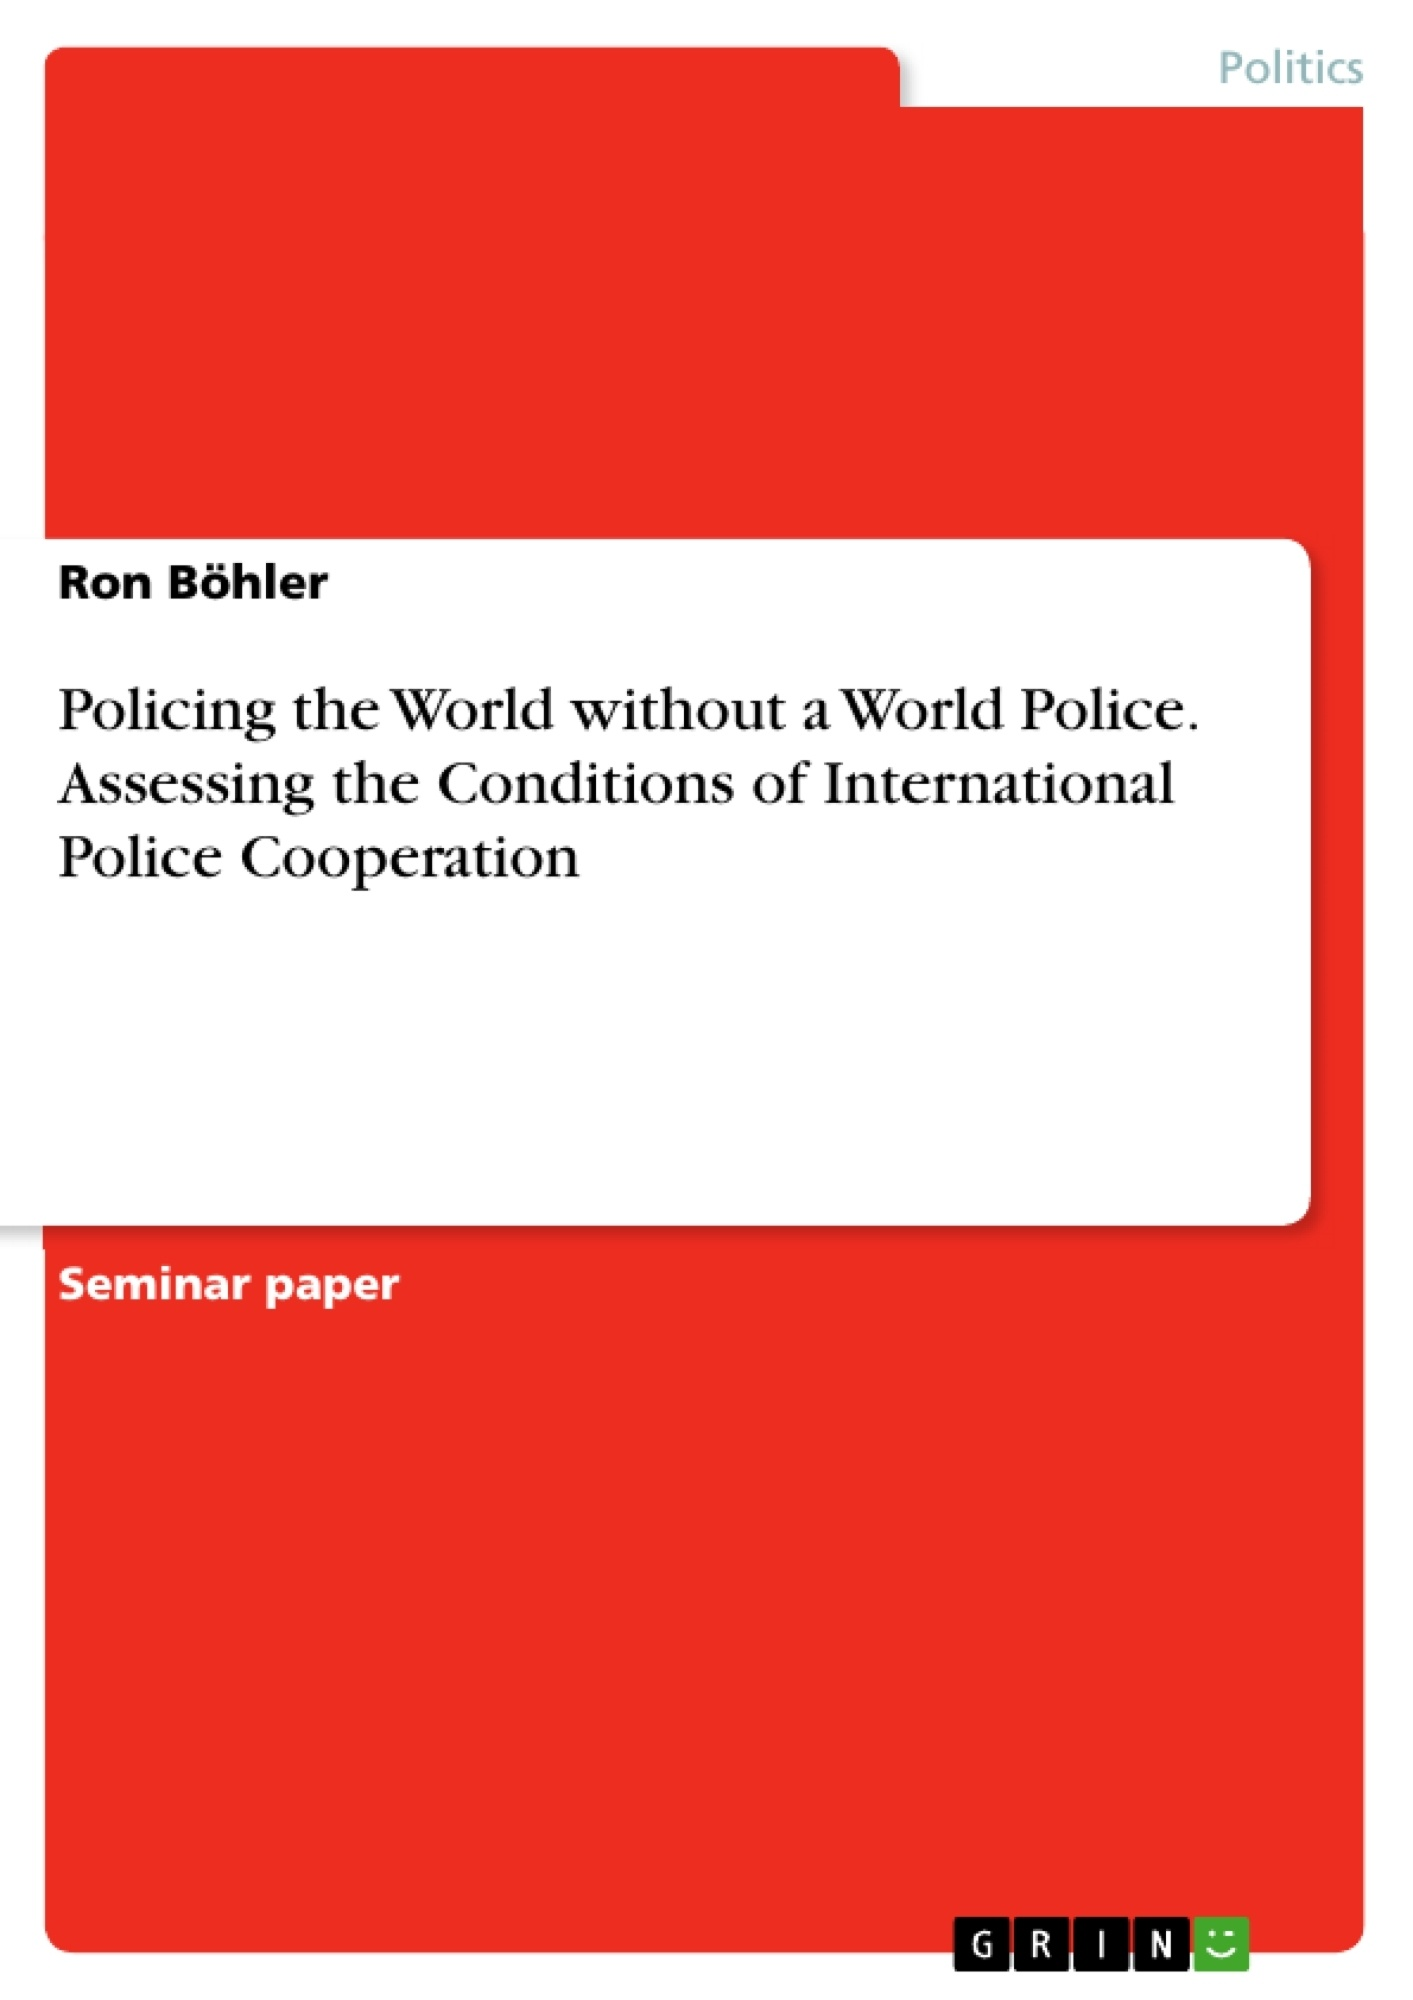 Title: Policing the World without a World Police. Assessing the Conditions of International Police Cooperation